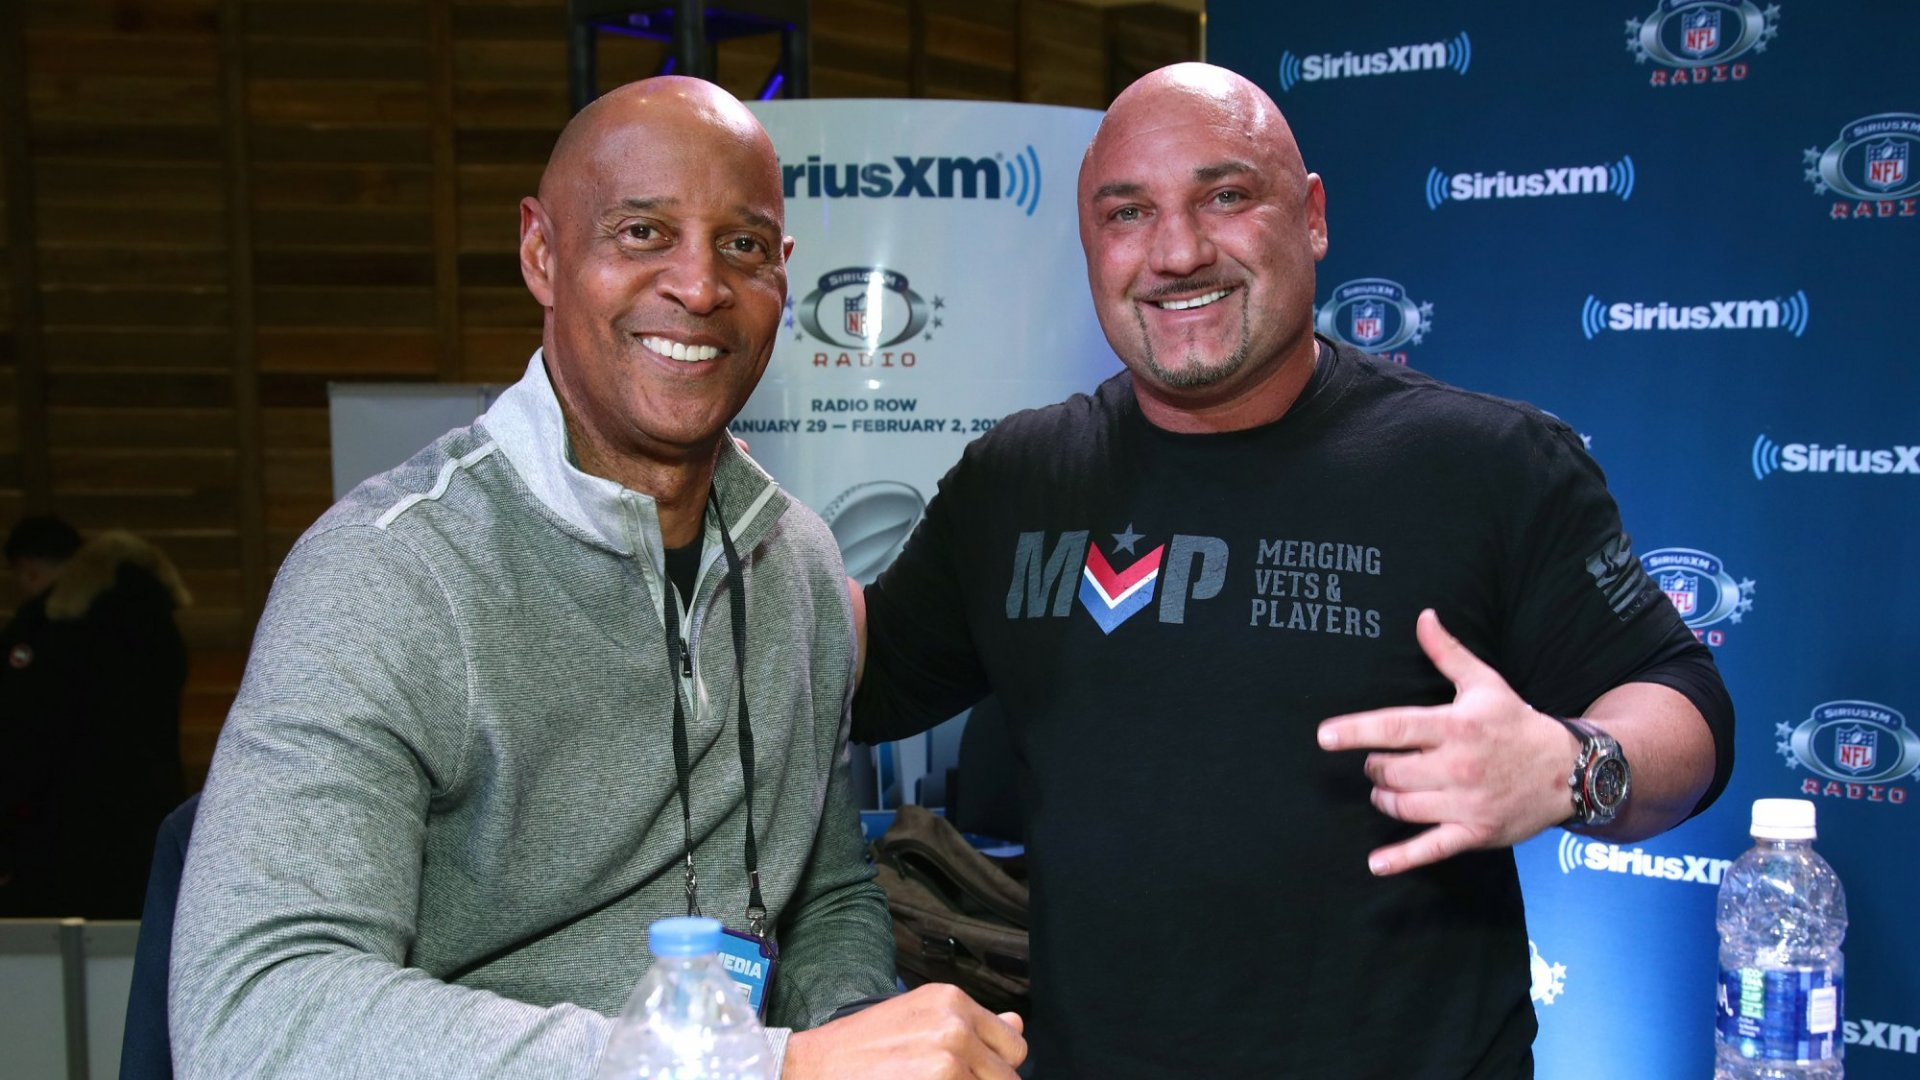 Jay Glazer's Key to Branching out Is Making Sure Each Avenue Builds the Others